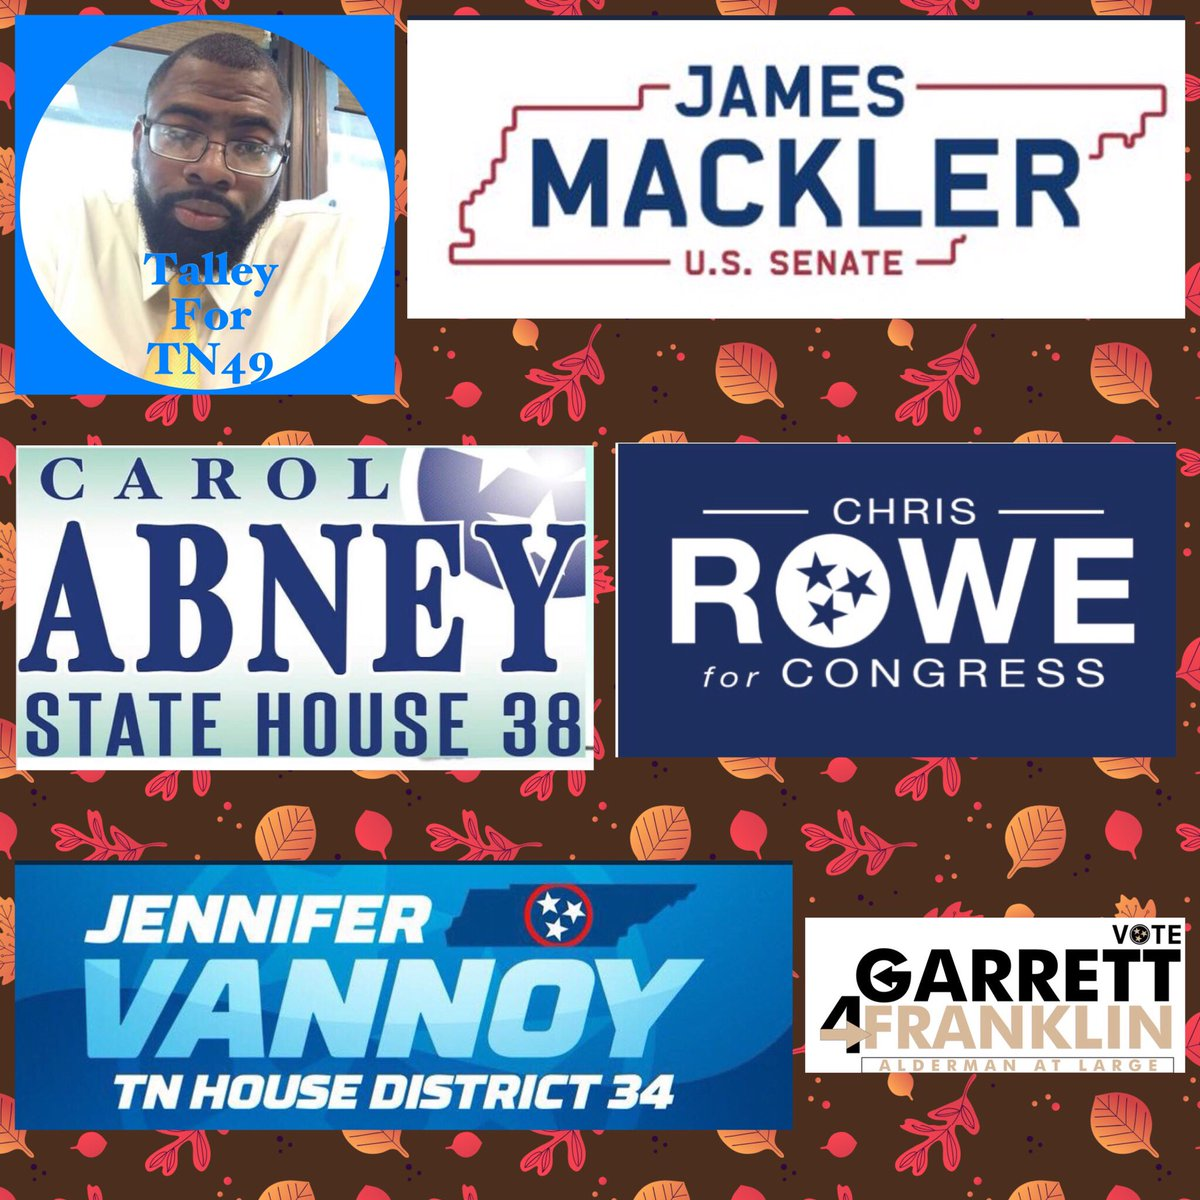 Happy Fall y'all! #FirstDayofFall and a great day to fall for these blue candidates! Follow and support: @James_Mackler @Talley4TN @ElectCarolAbney @ChrisForTN1 @JenVannoyTN @Garrett4Frnkln Democracy starts with local elections. Don't 🍁 leaf 🍂 anyone out!